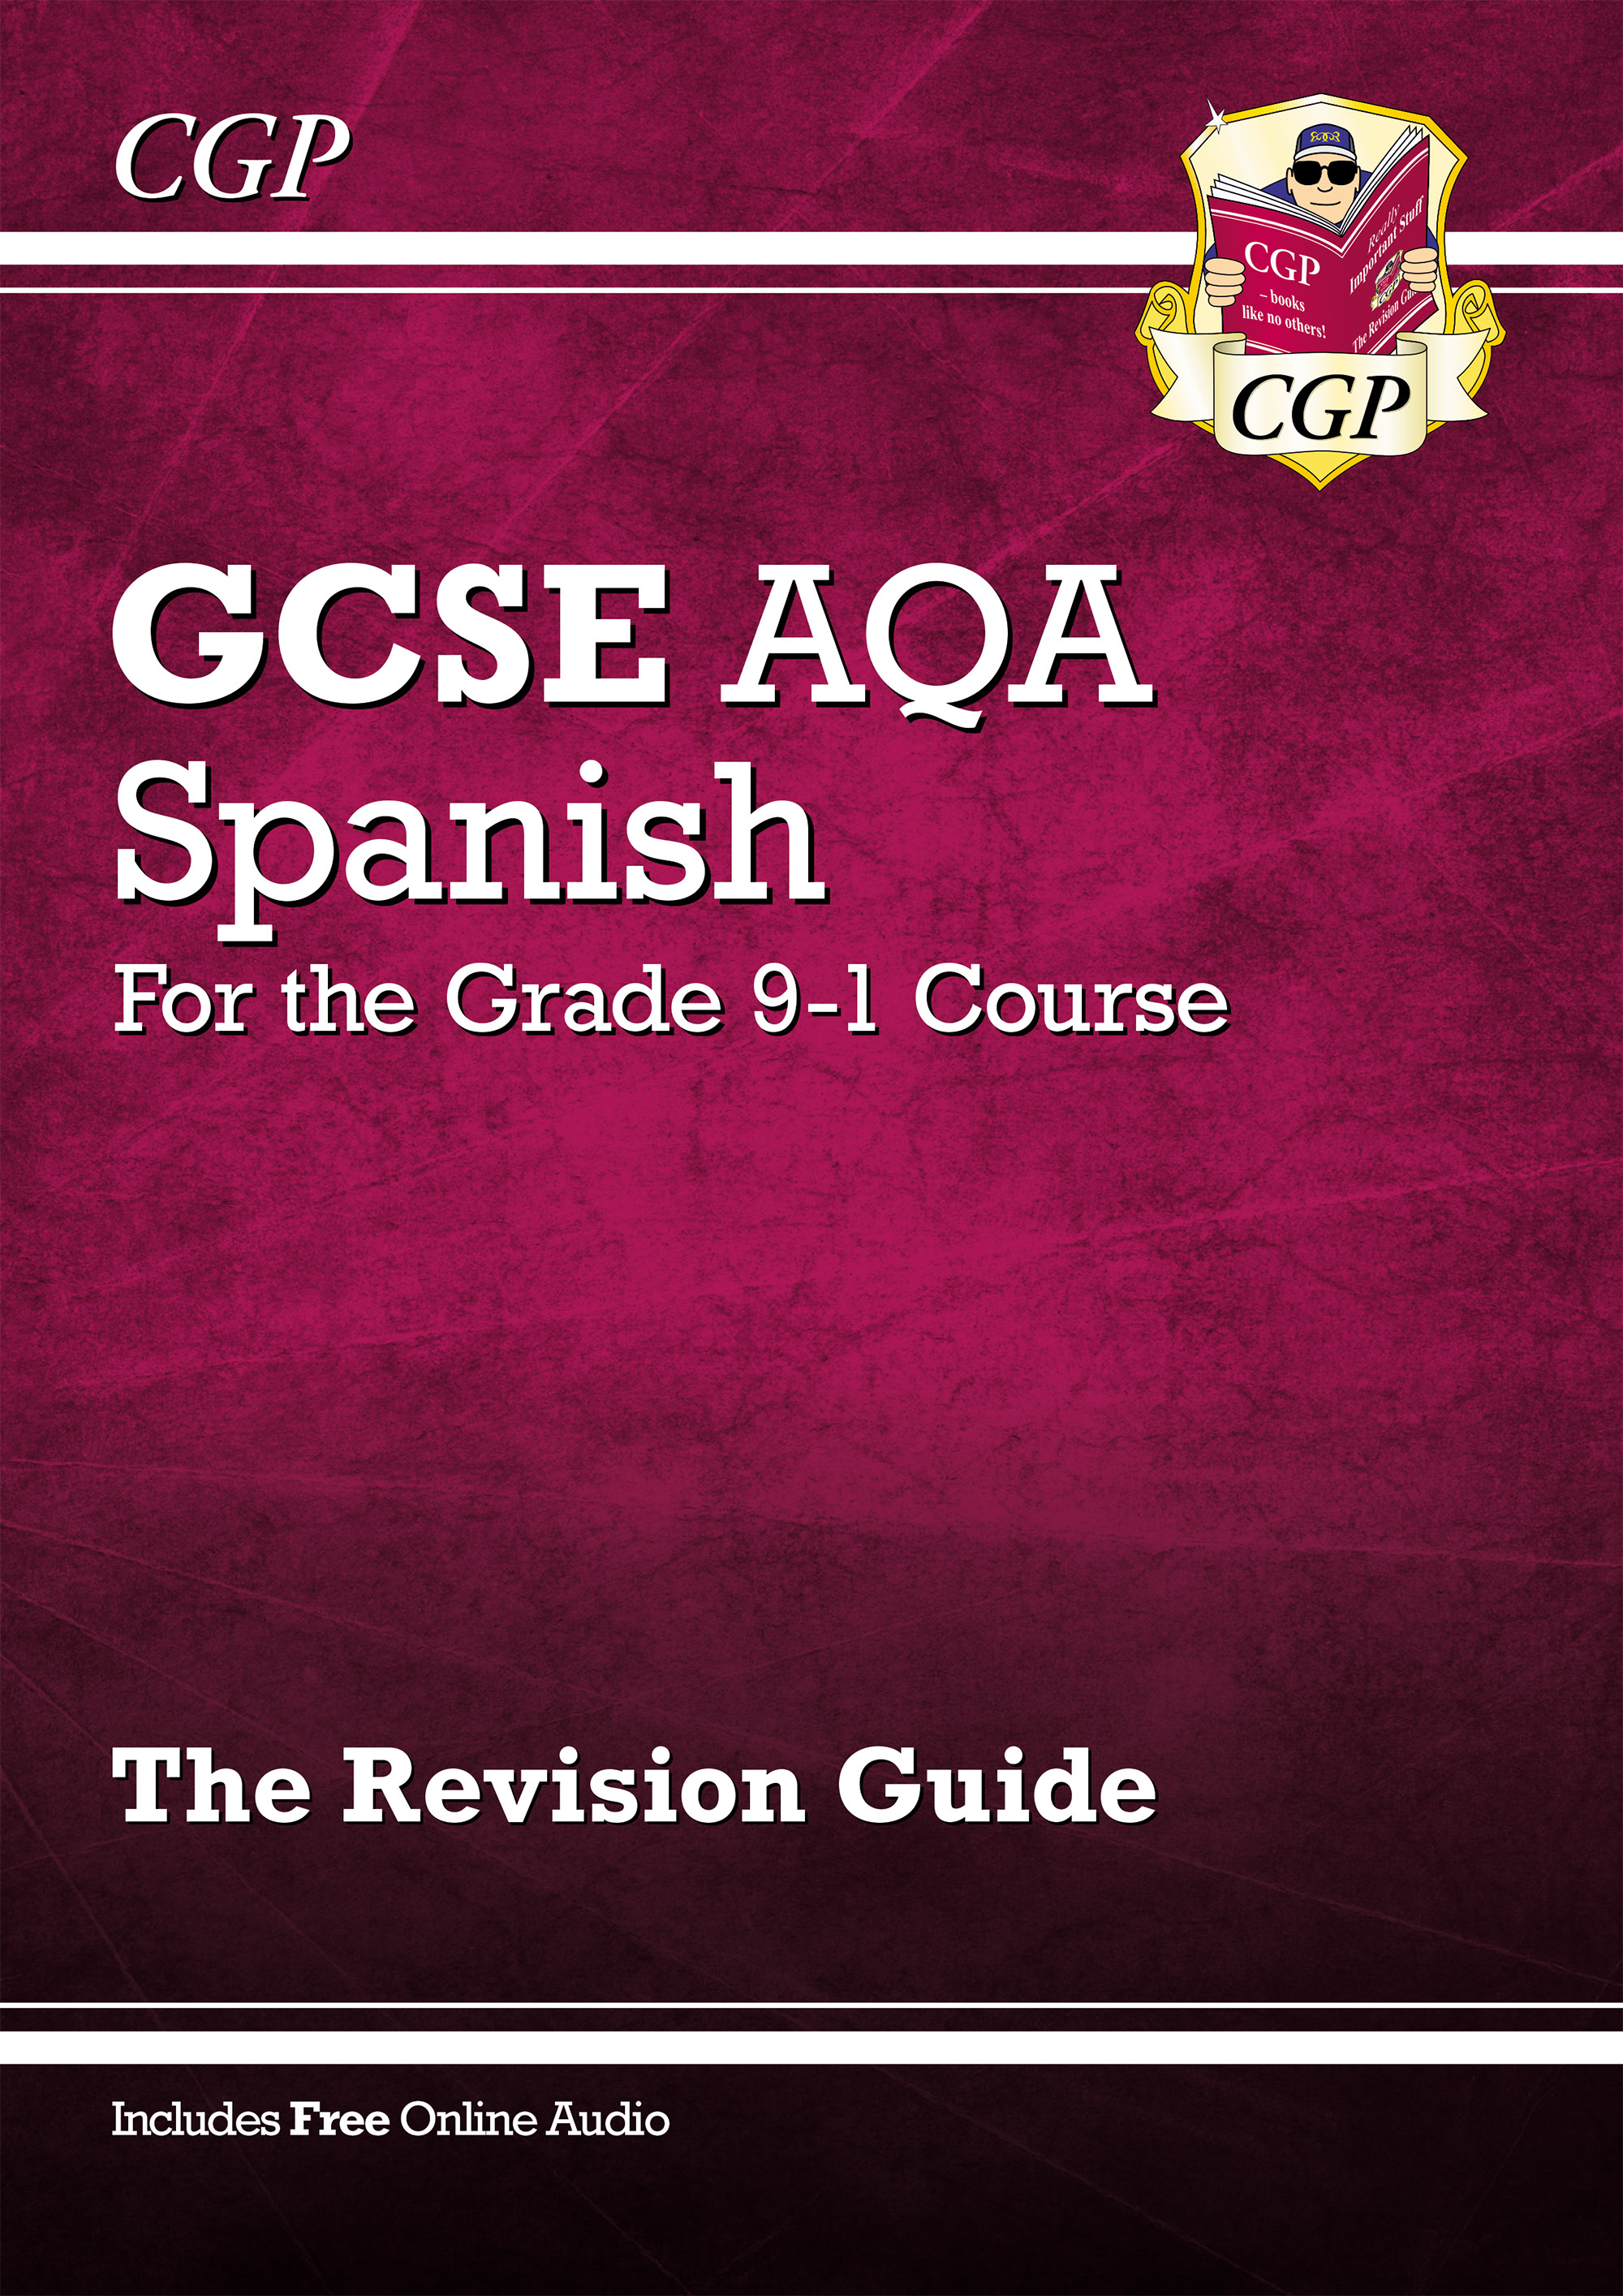 SPAR41D - GCSE Spanish AQA Revision Guide - for the Grade 9-1 Course (Online Edition)